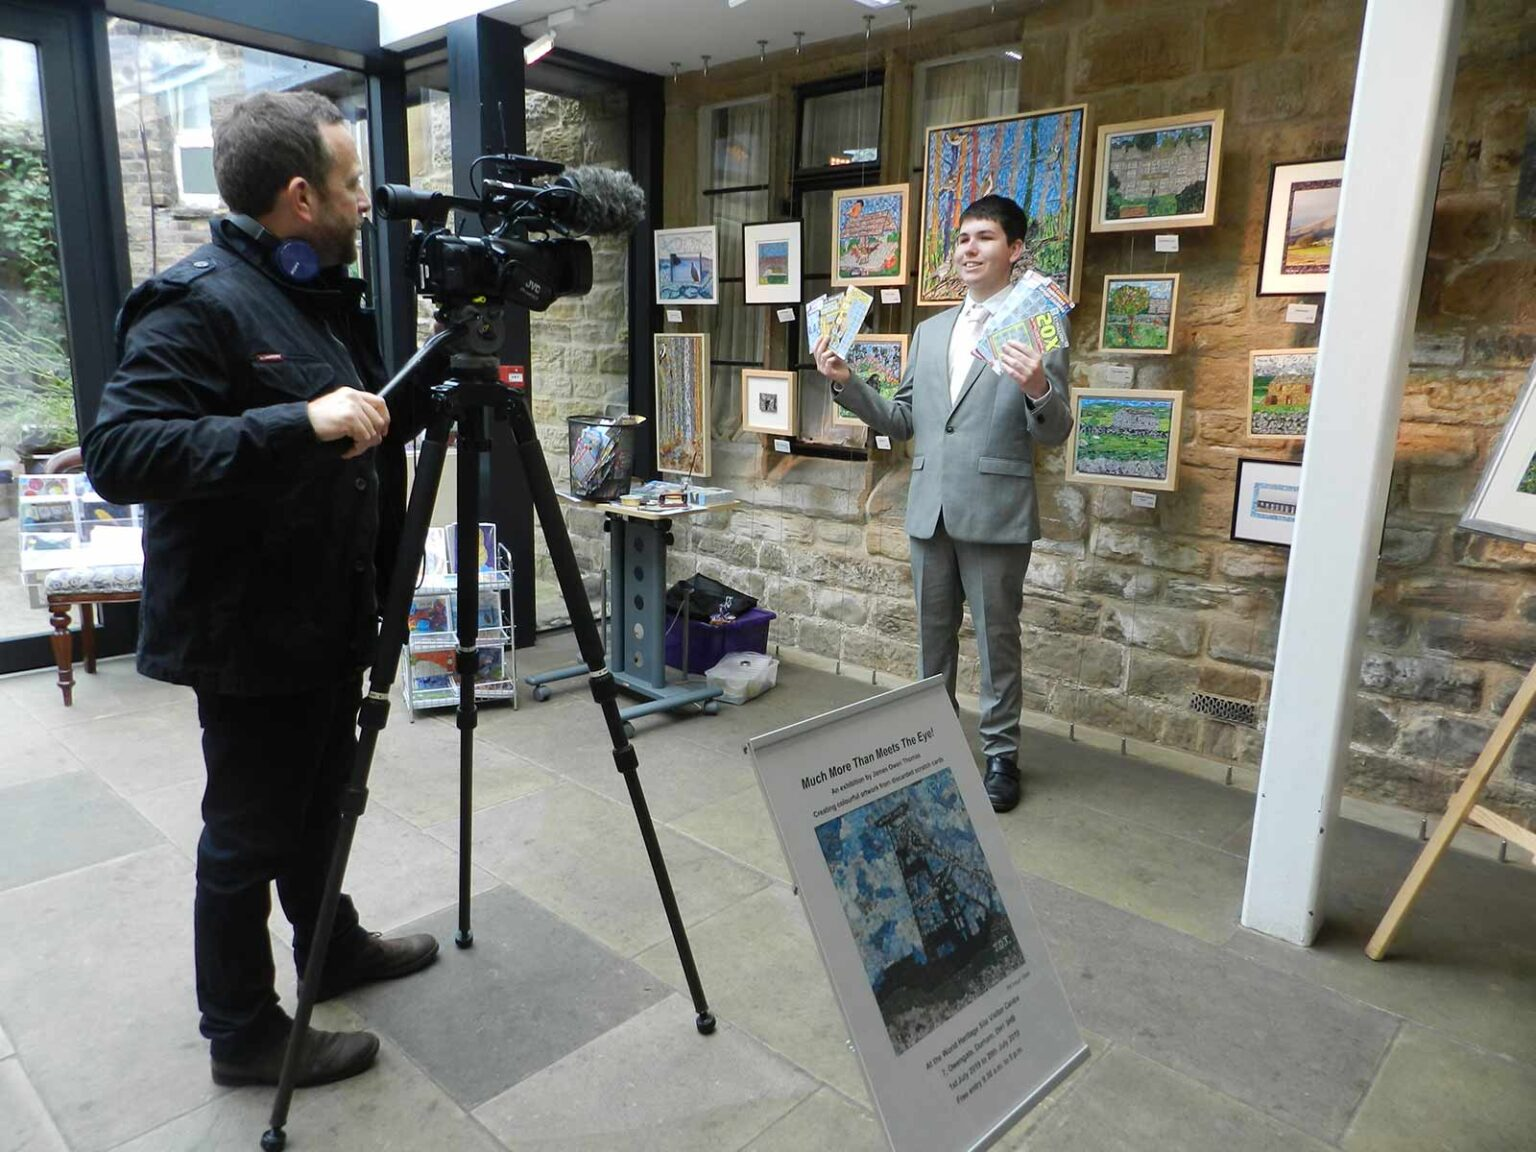 James being filmed for an interview at one of his exhibitions